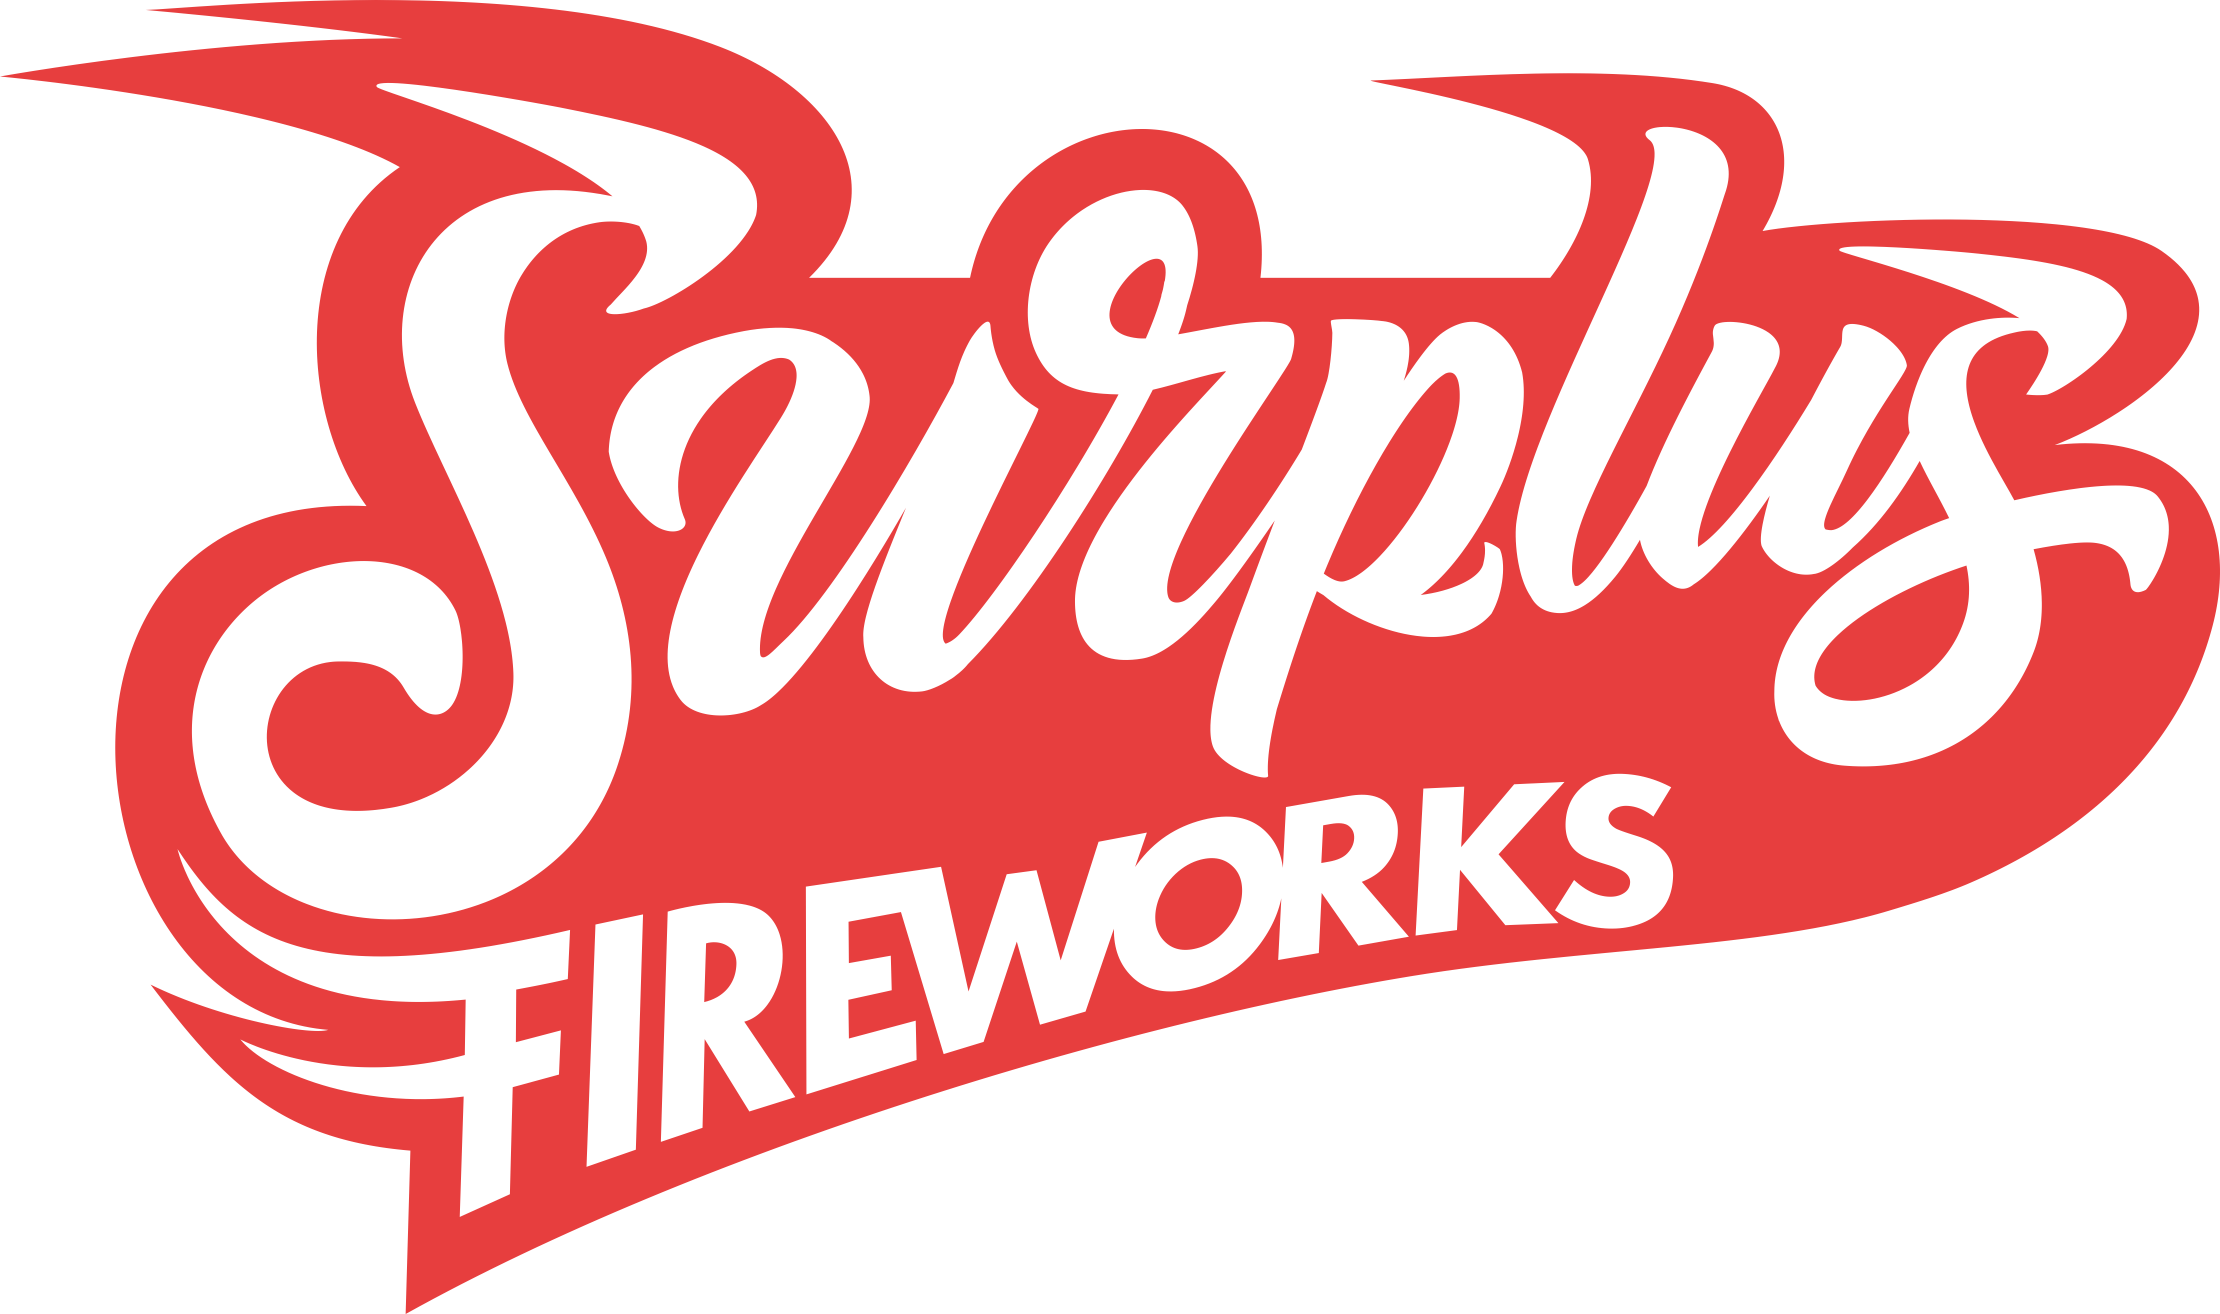 Create an amazing logo for an amazing fireworks retailer!